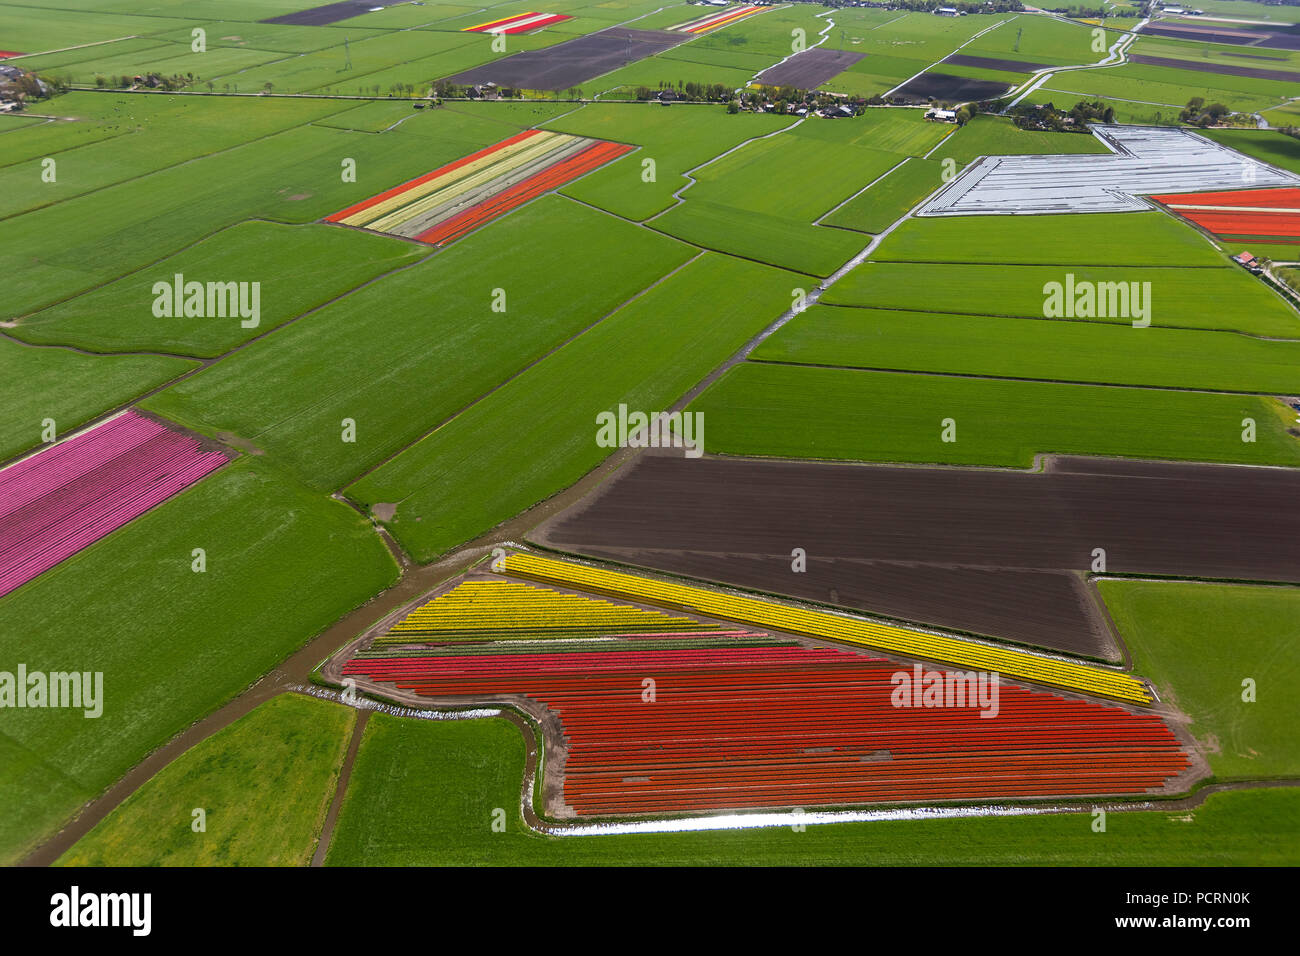 Tulip fields, agriculture, colorful tulip fields, tulips (lat.Tulipa), ornamental flowers, Zuidermeer, Holland, North Holland, Netherlands, Europe Stock Photo